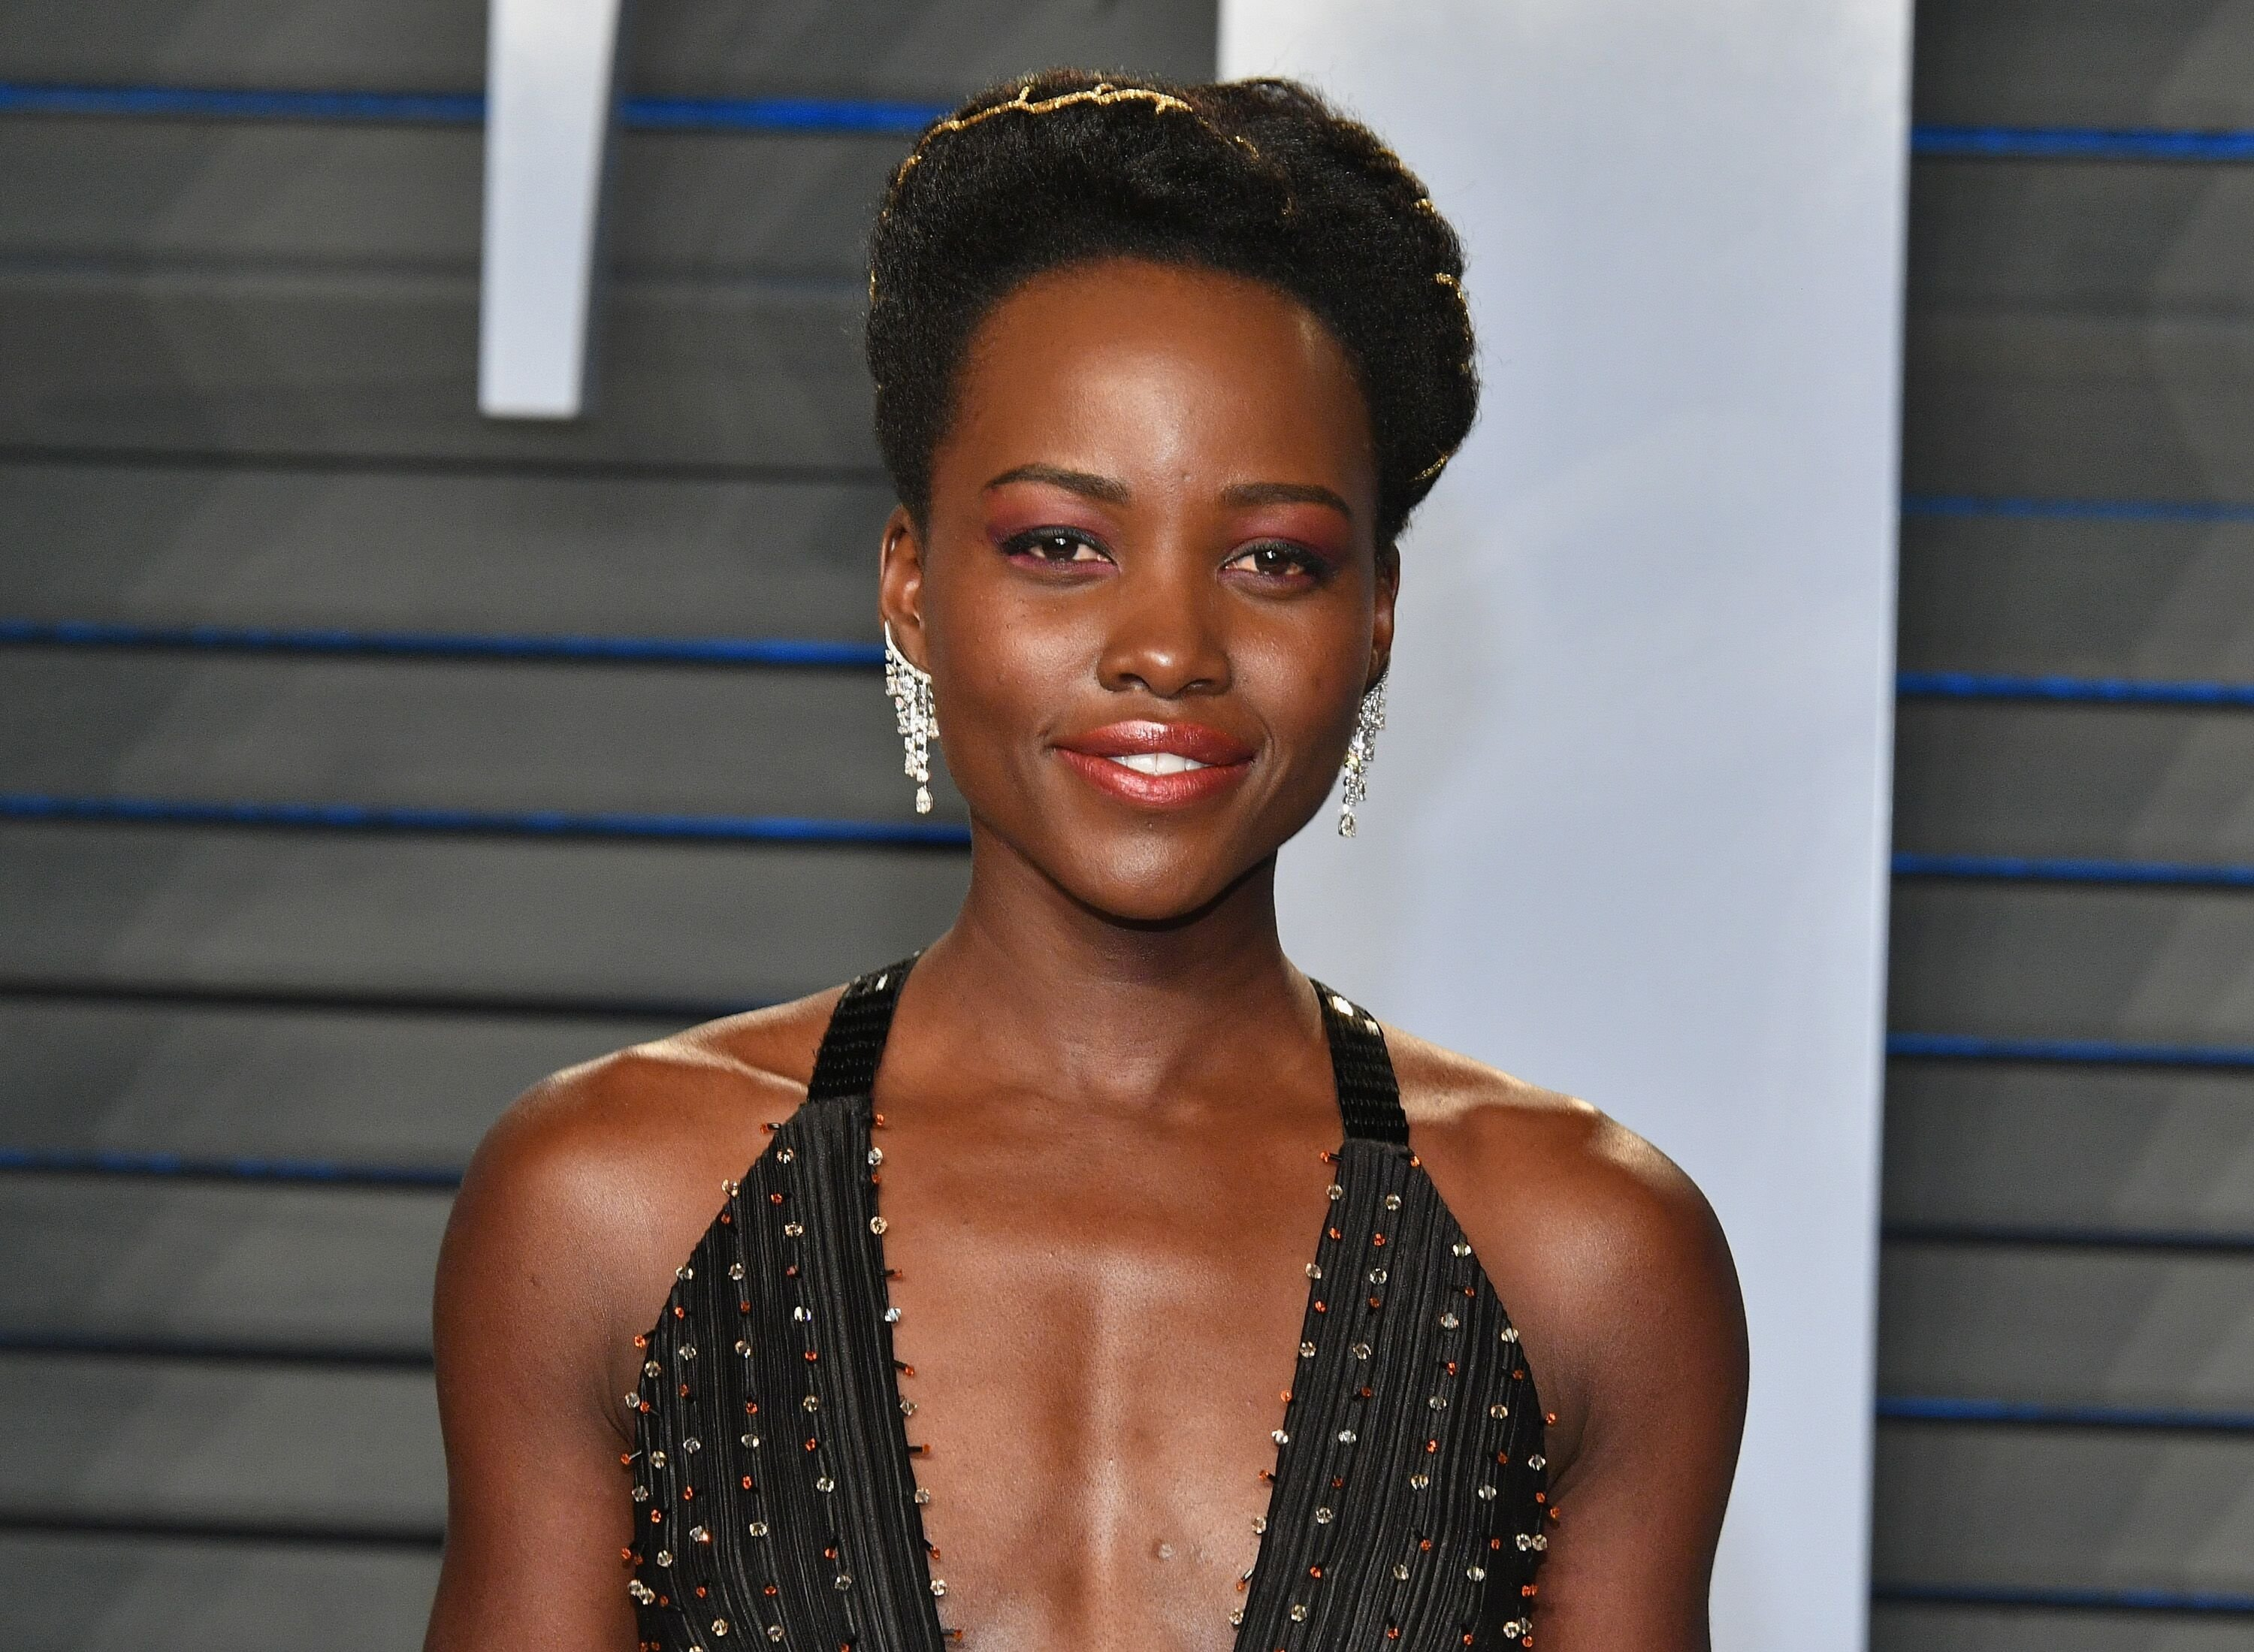 Lupita Nyong'o at the Vanity Fair Oscars Party 2018 | Source: Getty Images/GlobalImagesUkraine